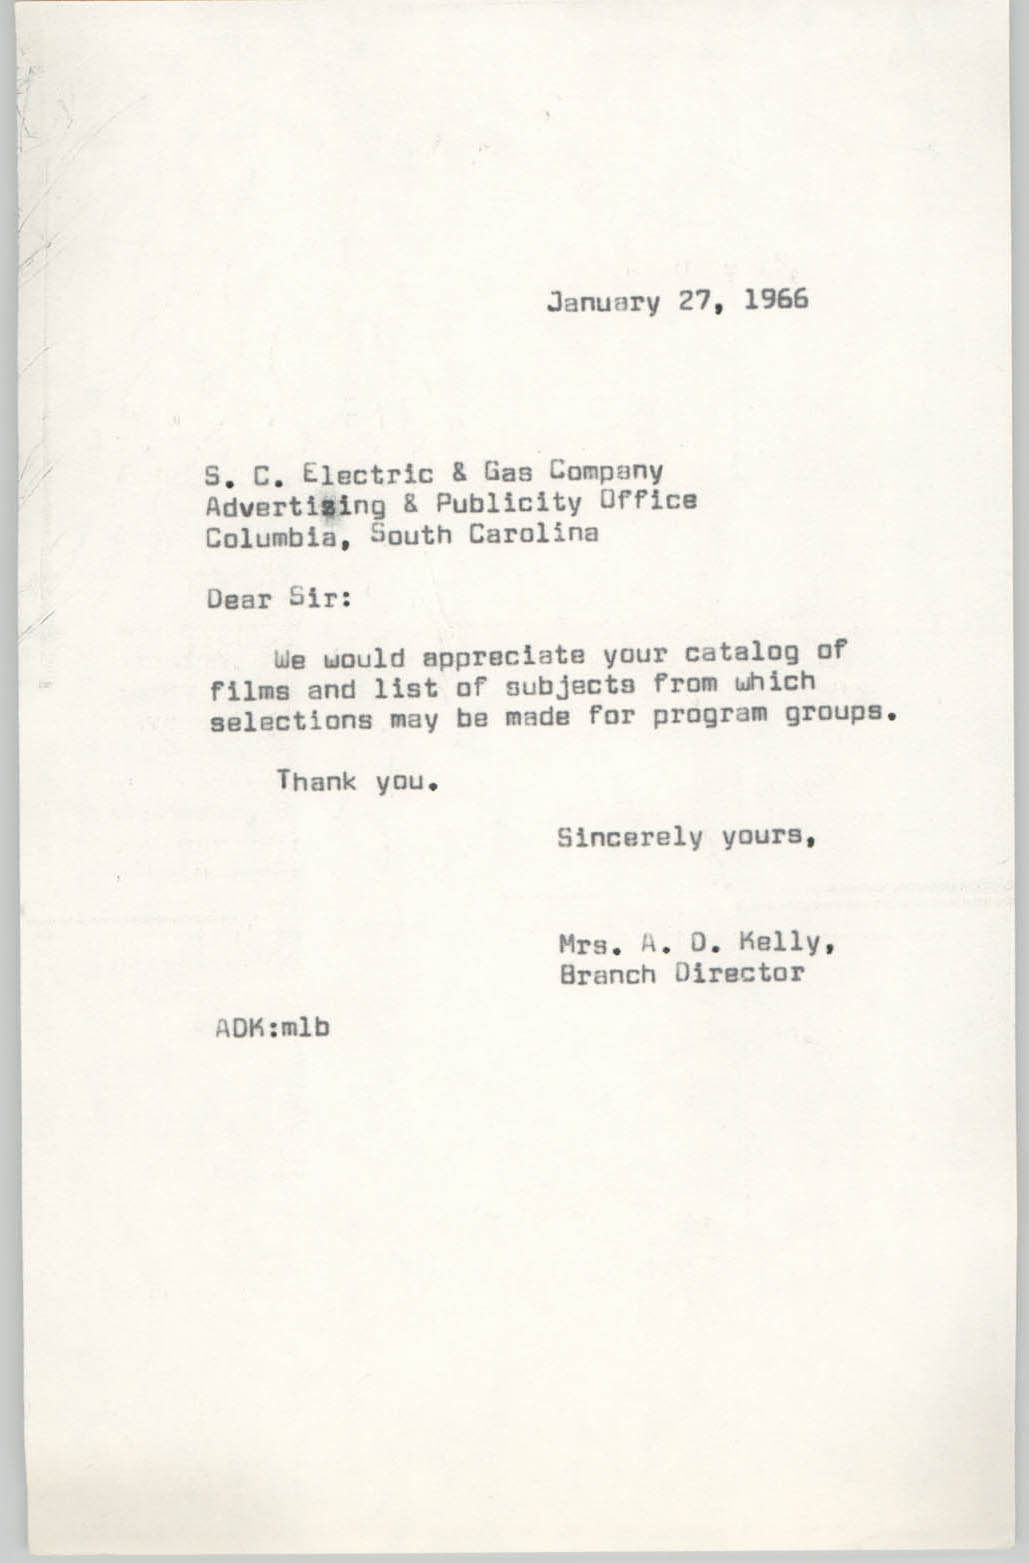 Letter from Anna D. Kelly to S. C. Electric and Gas Company, January 27, 1966